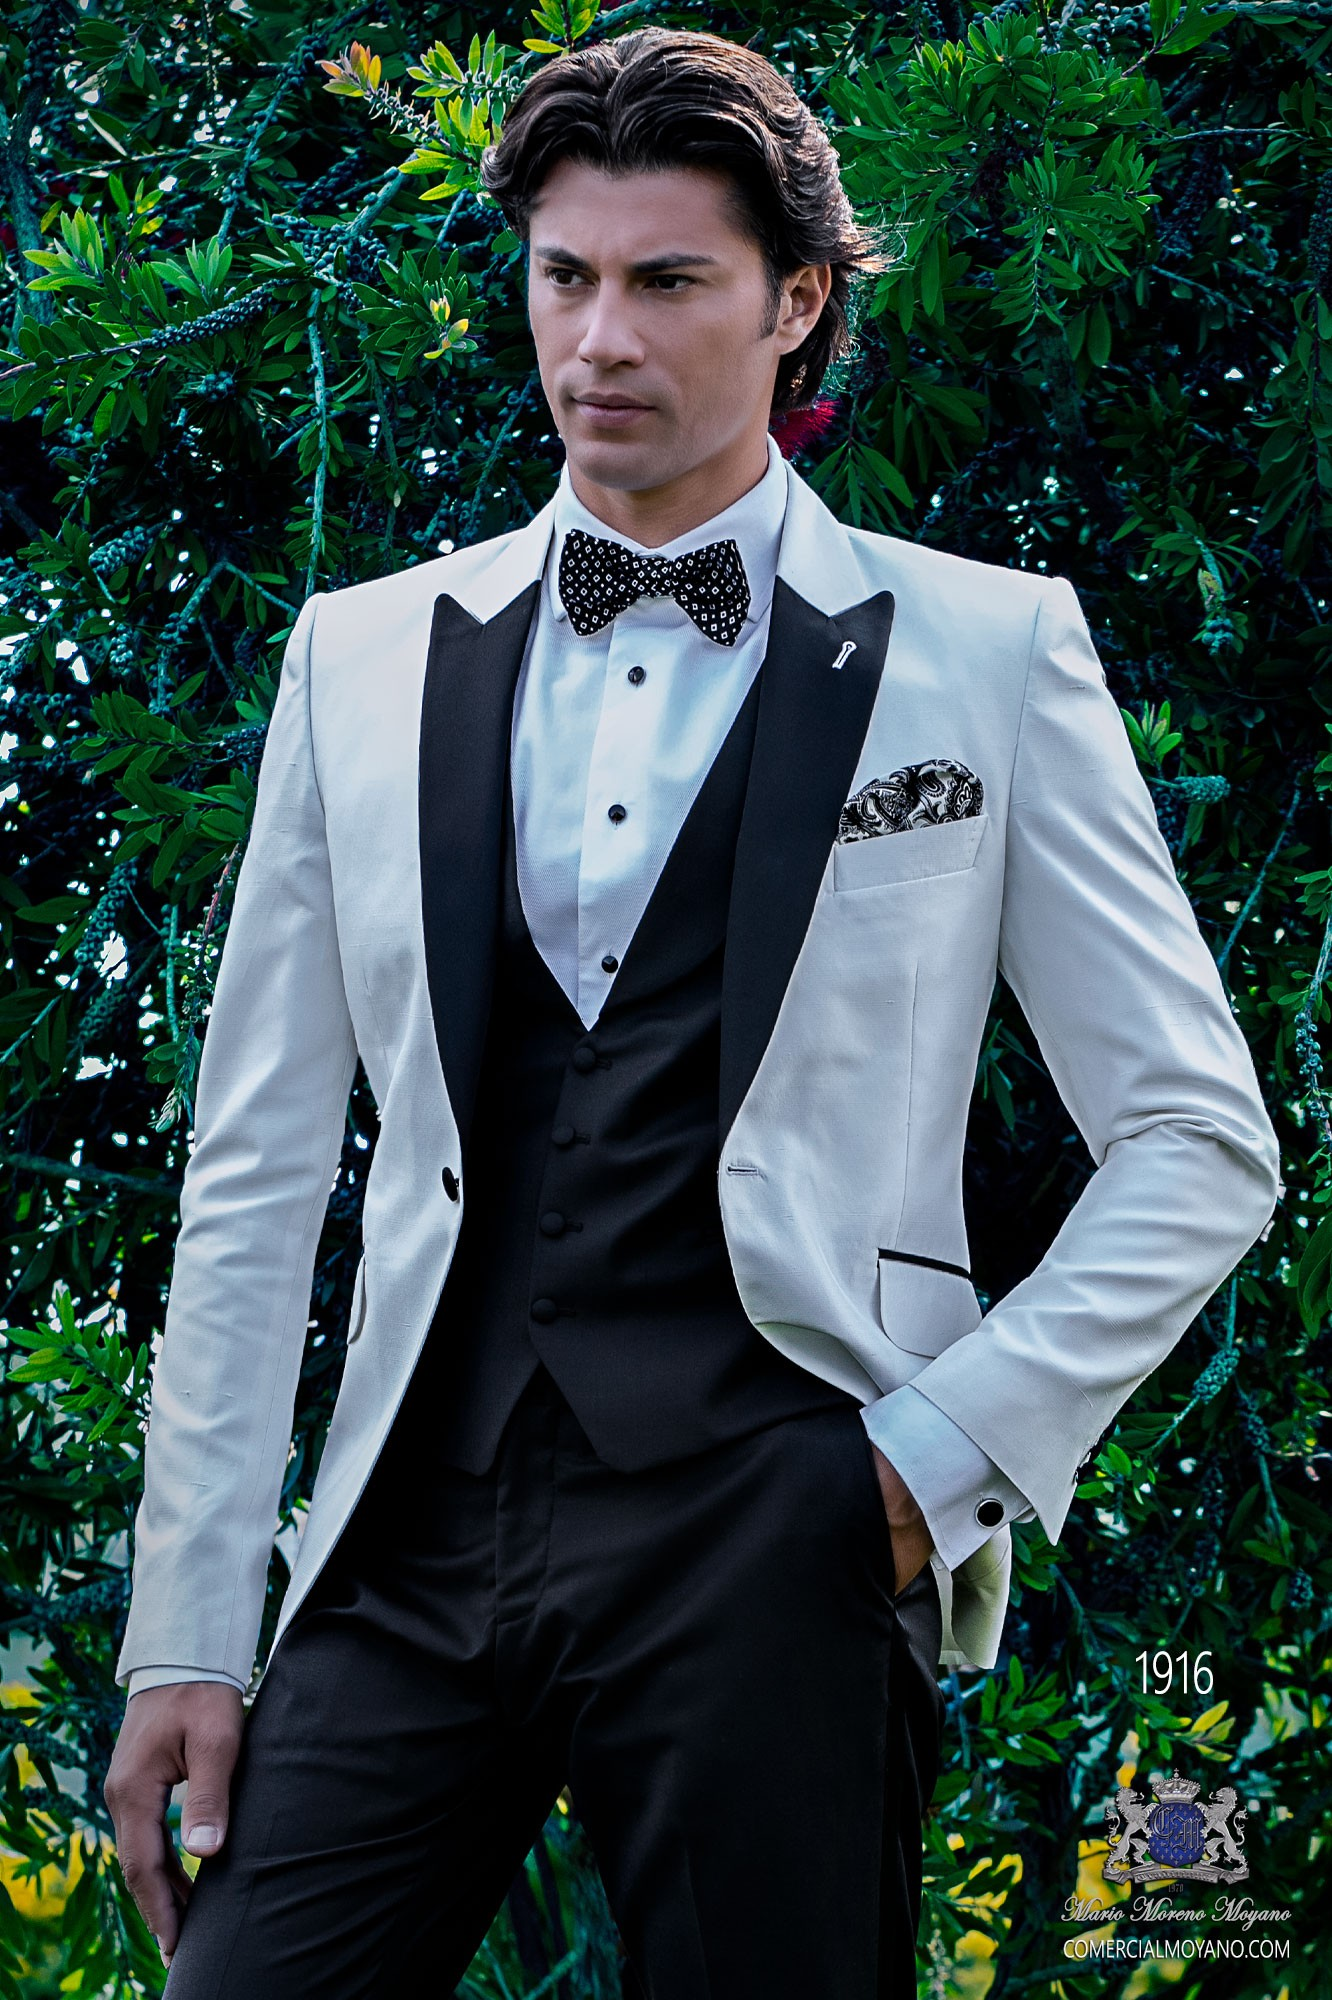 Bespoke black & white shantung dinner jacket combined with a black trousers model 1916 Ottavio Nuccio Gala